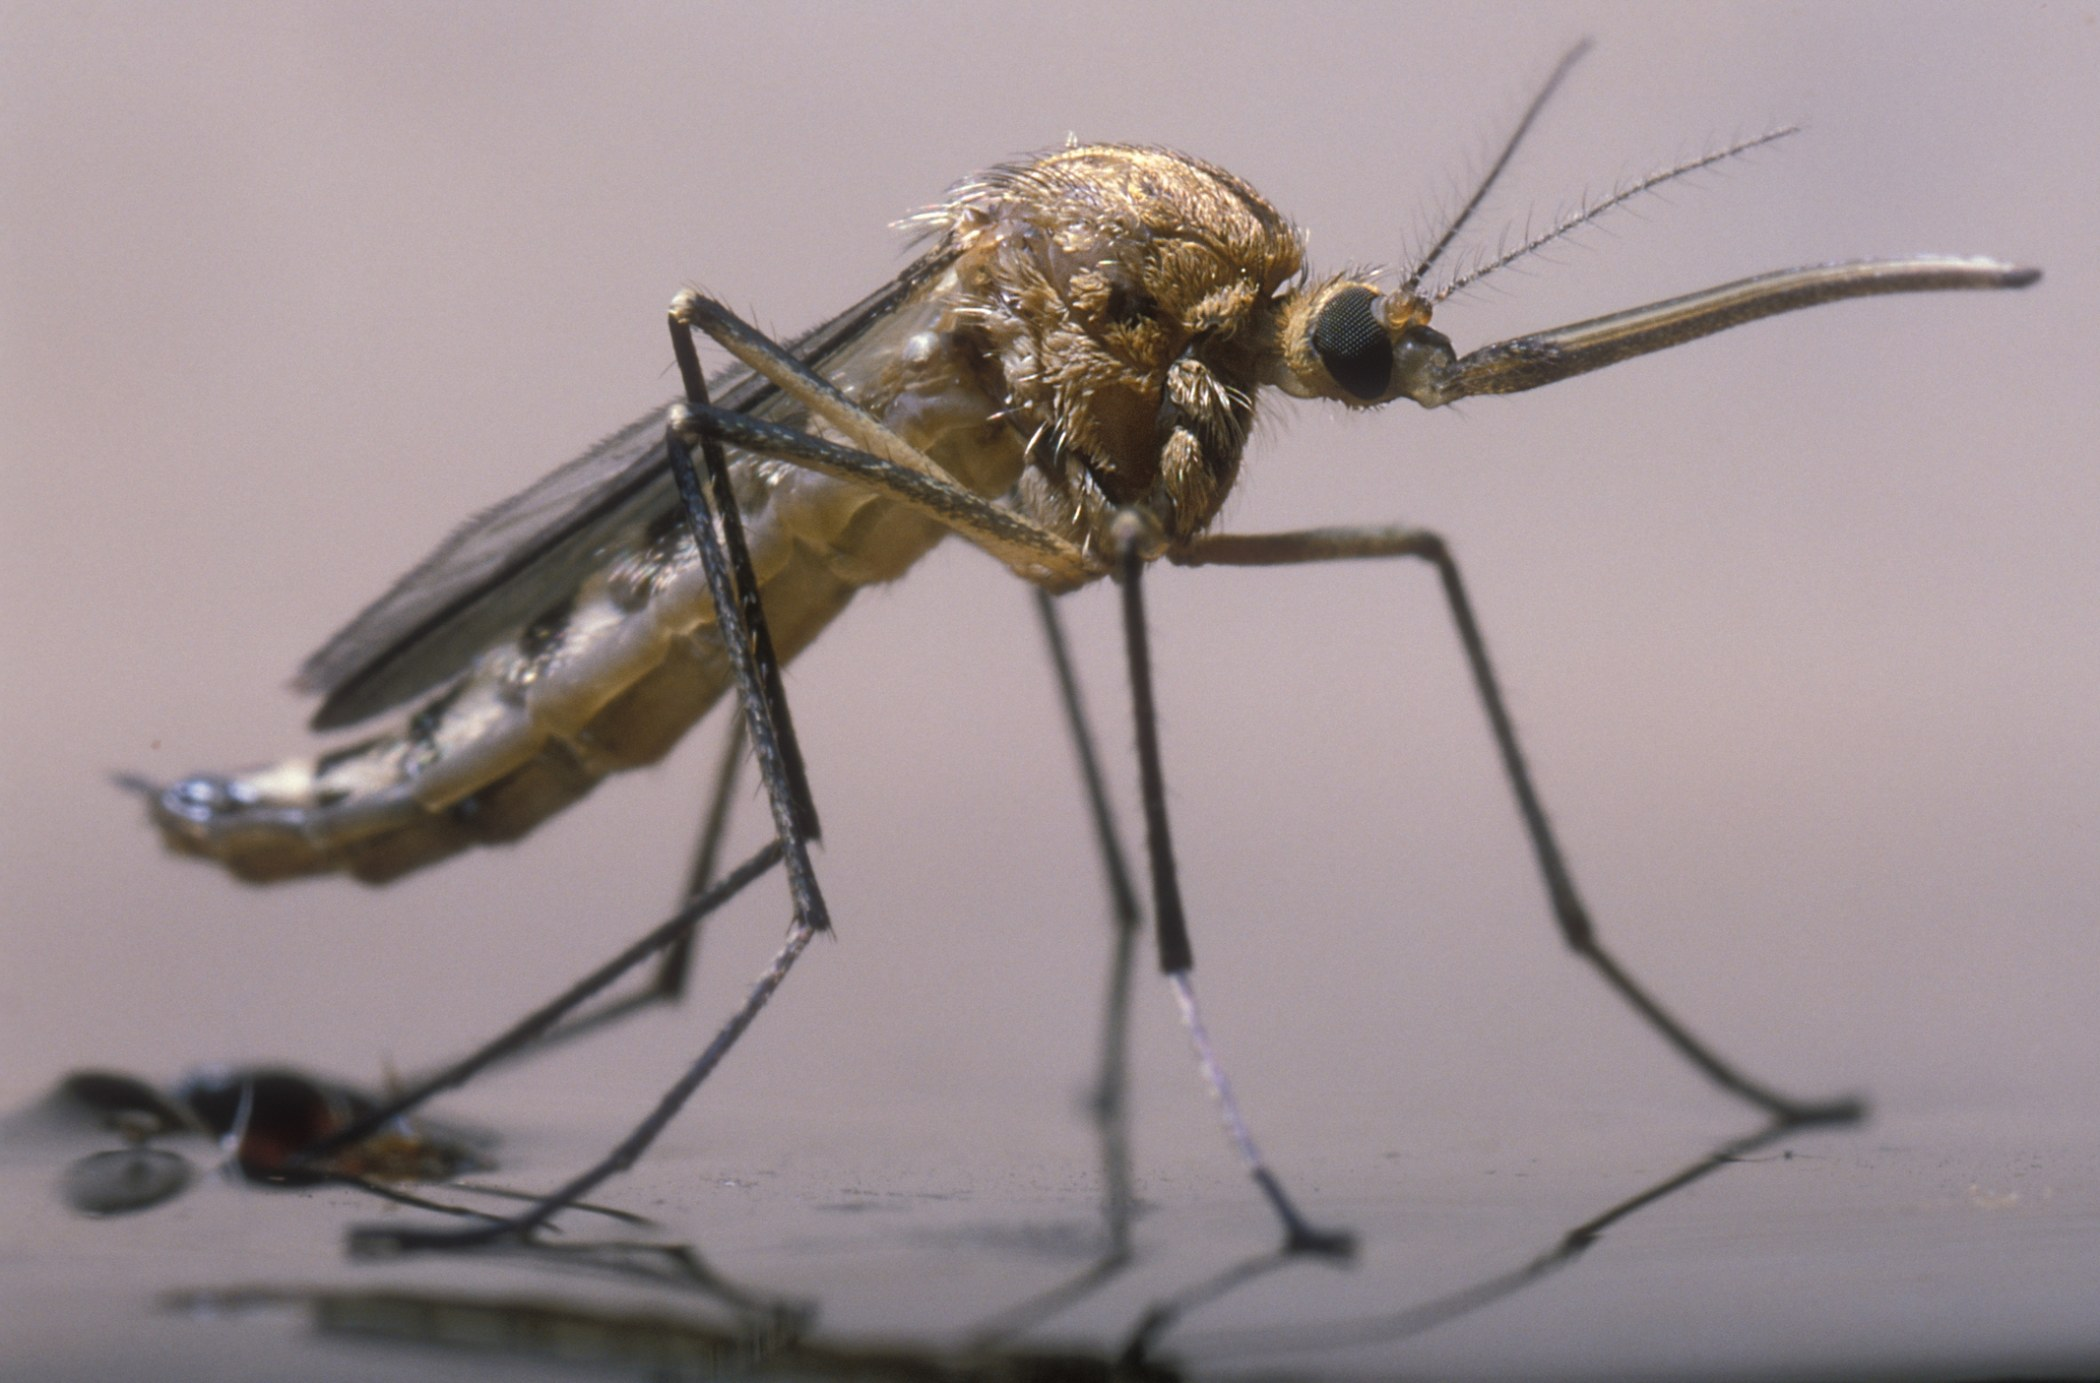 Malaria is transmitted by female mosquitoes.